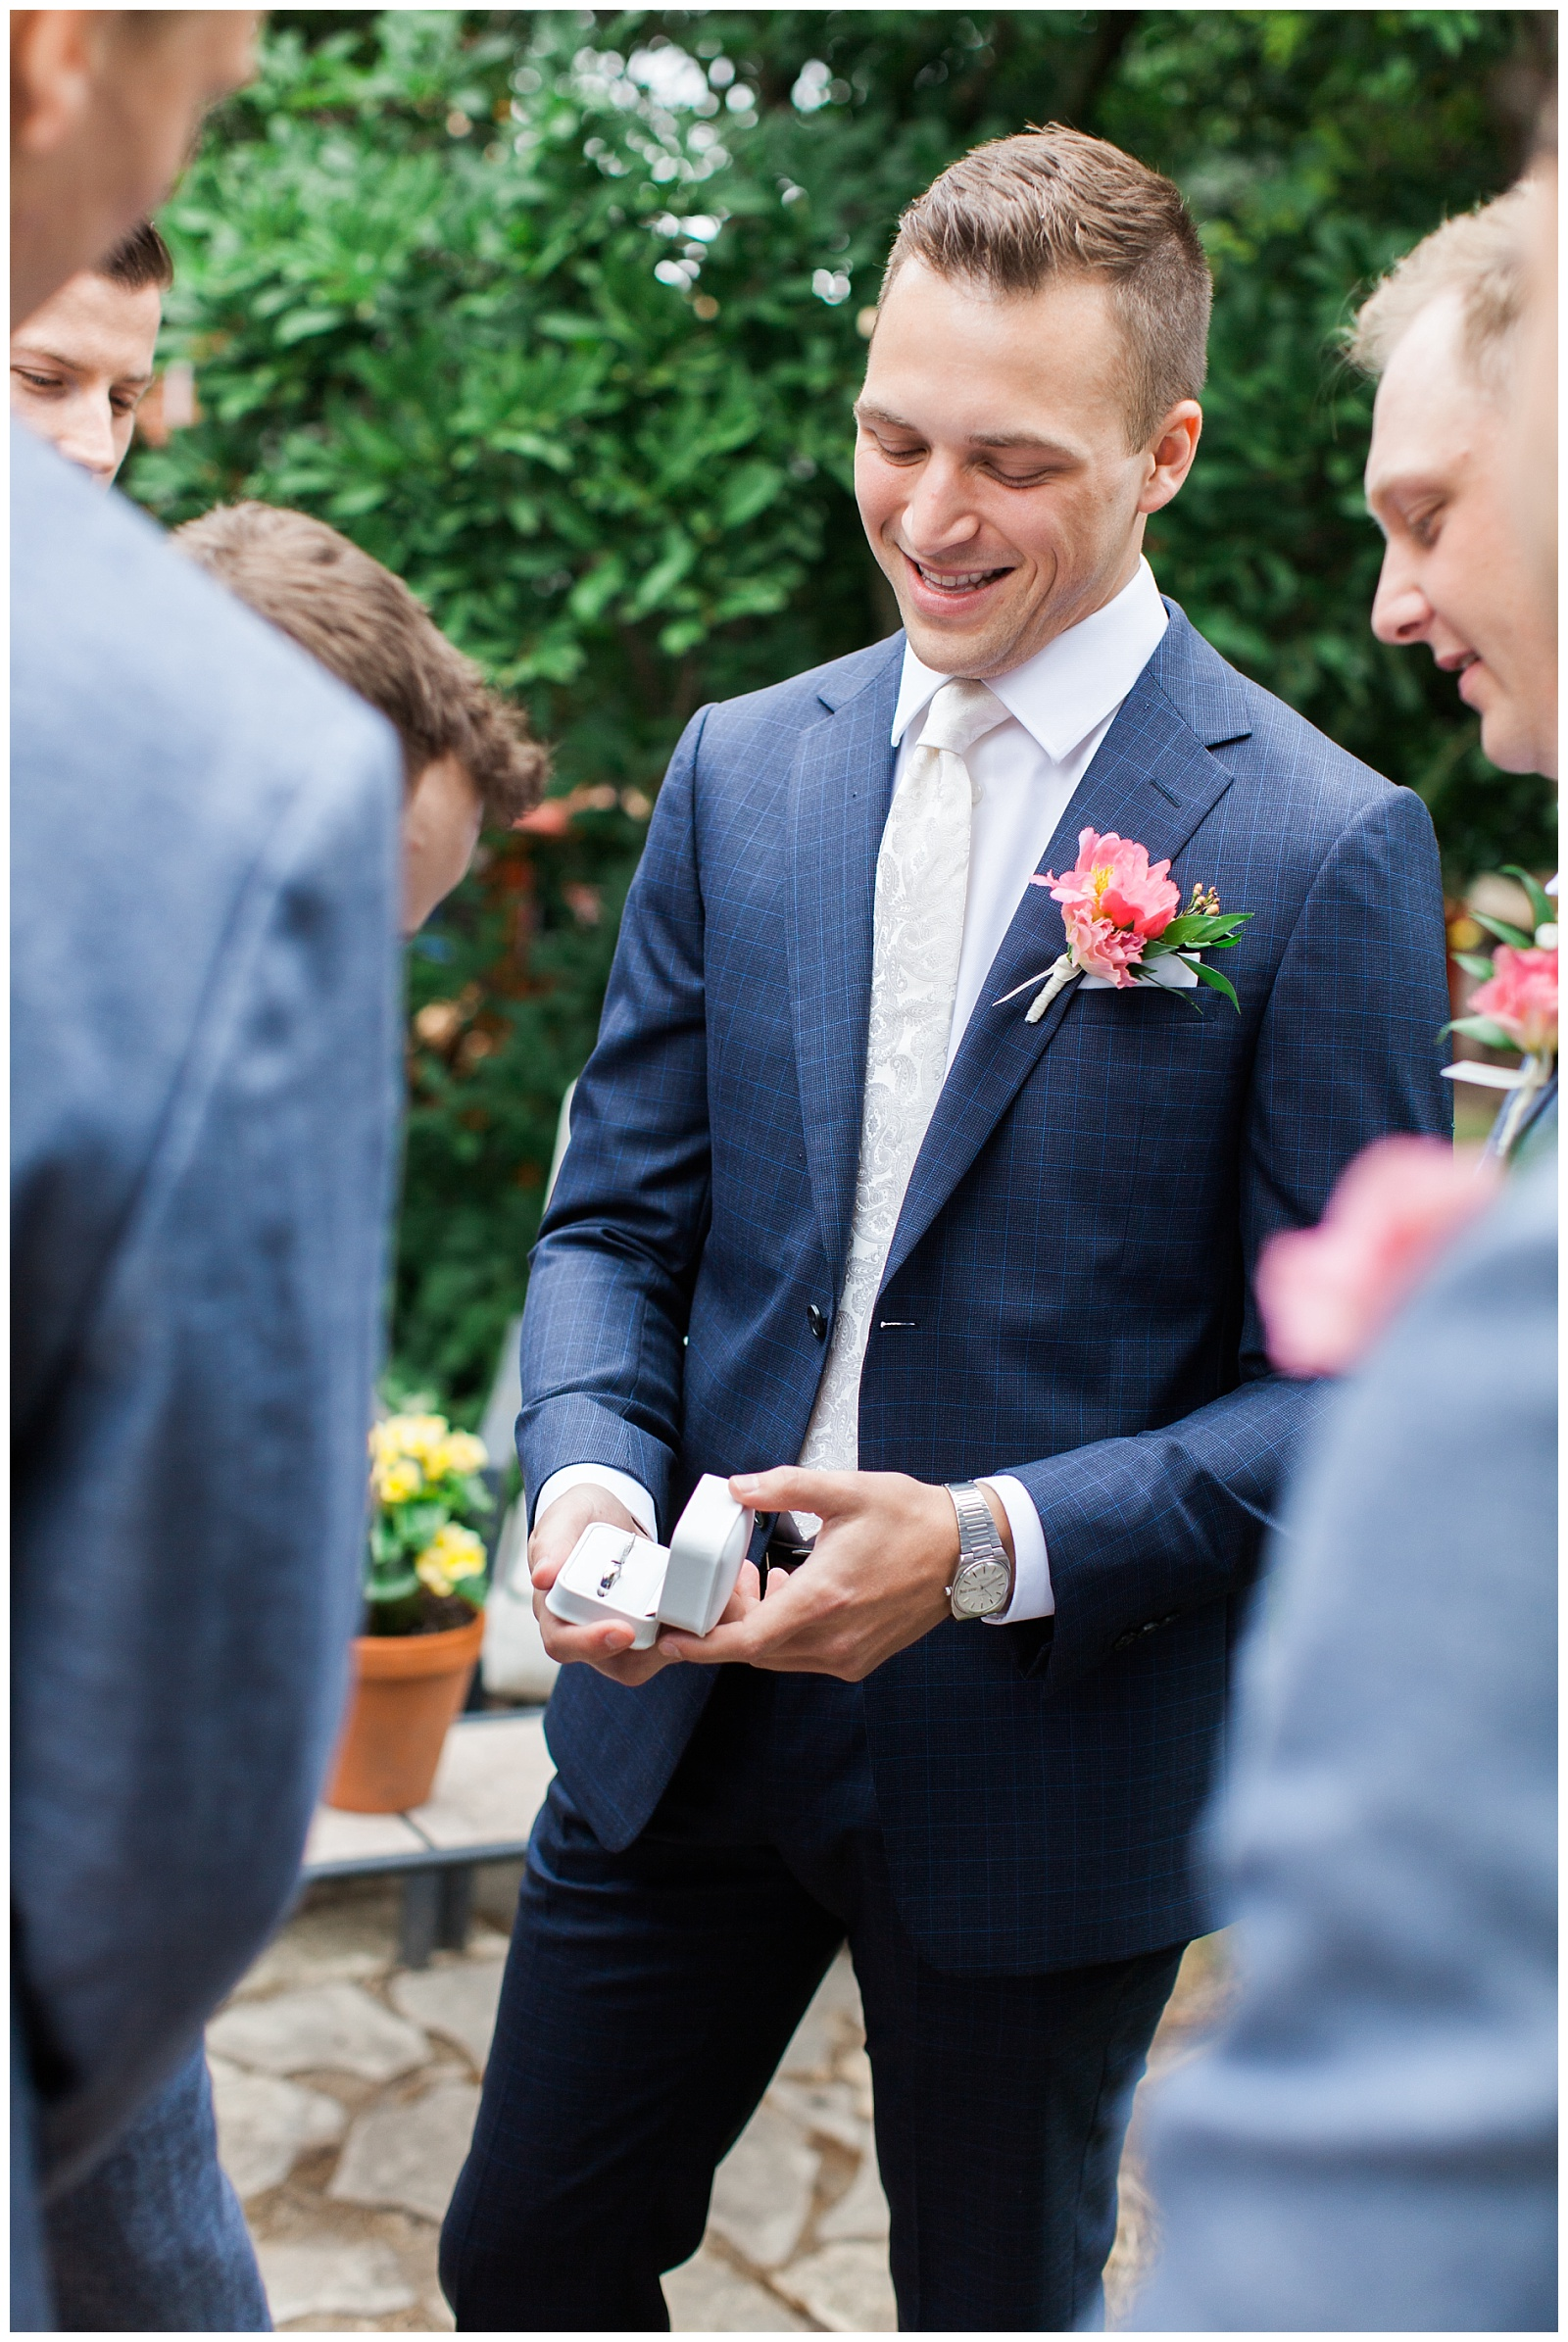 Groom showing the rings to his groomsmen at Guelph Ontario Wedding | Ontario Wedding Photographer | Toronto Wedding Photographer | 3photography